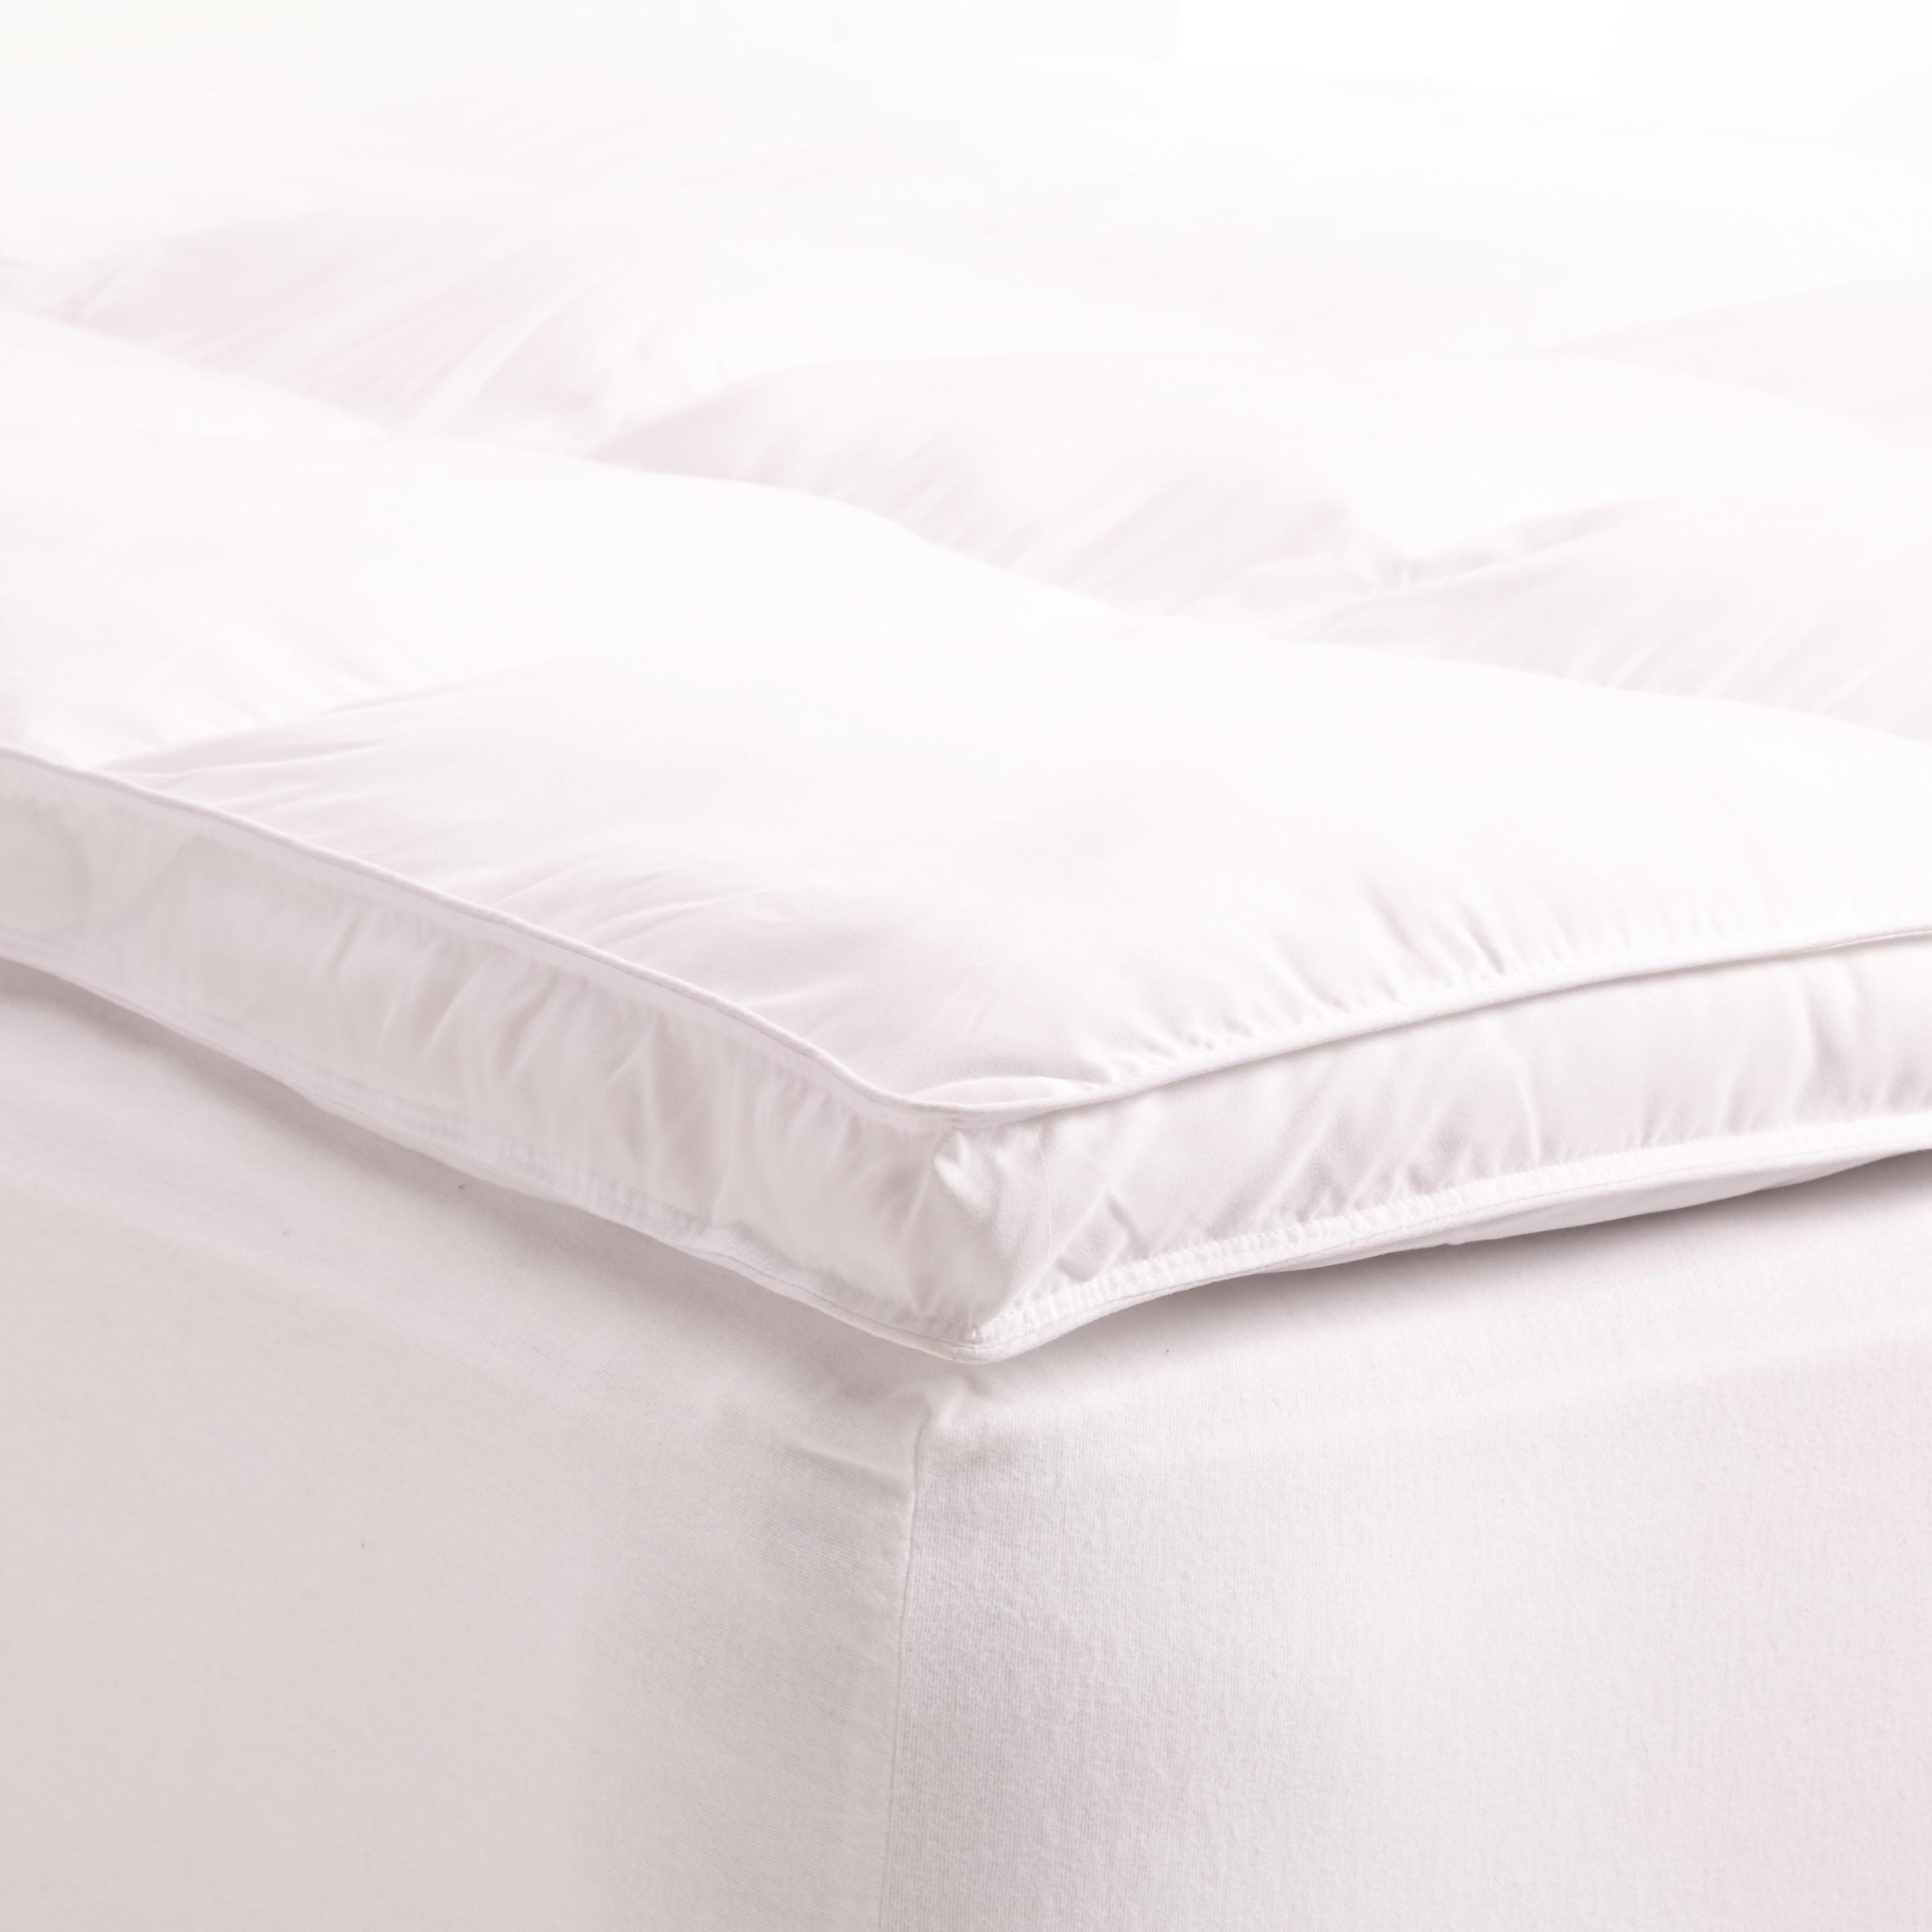 Superior Twin Mattress Topper, Hypoallergenic White Down Alternative Featherbed Mattress Pad - Plush, Overfilled, and 2'' Thick by Superior